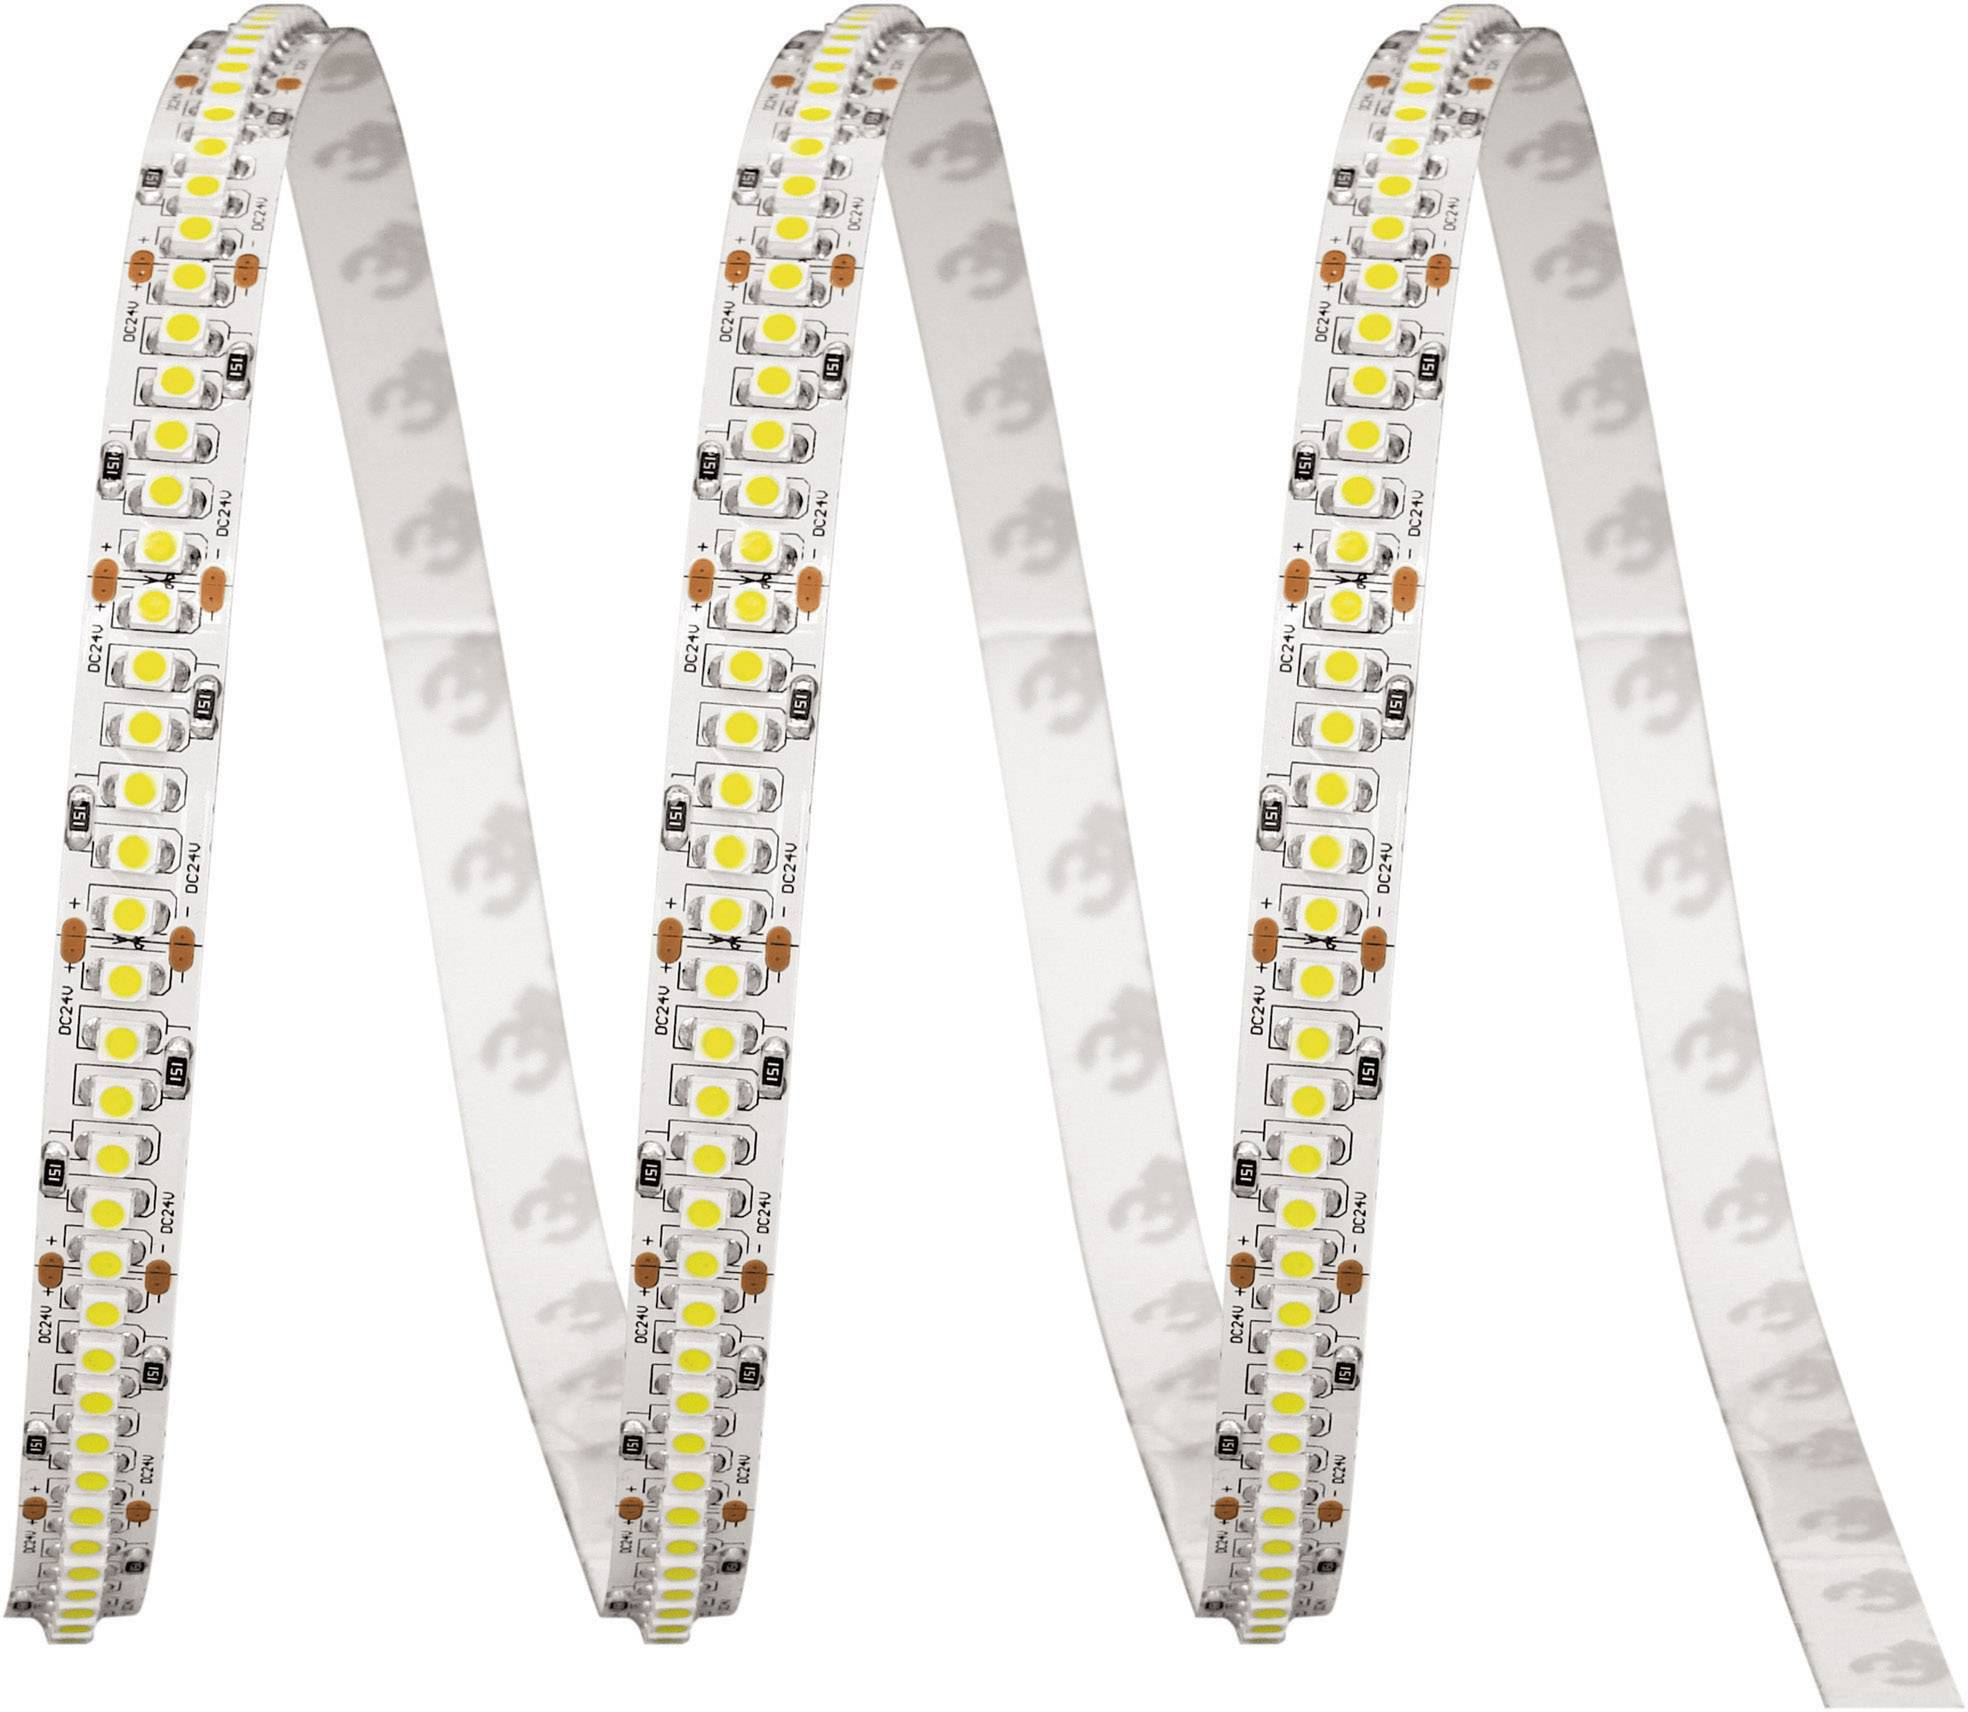 LED pás ohebný samolepicí 24VDC ledxon High Power Multi SMD Band, 9009061, 25 mm, zelená